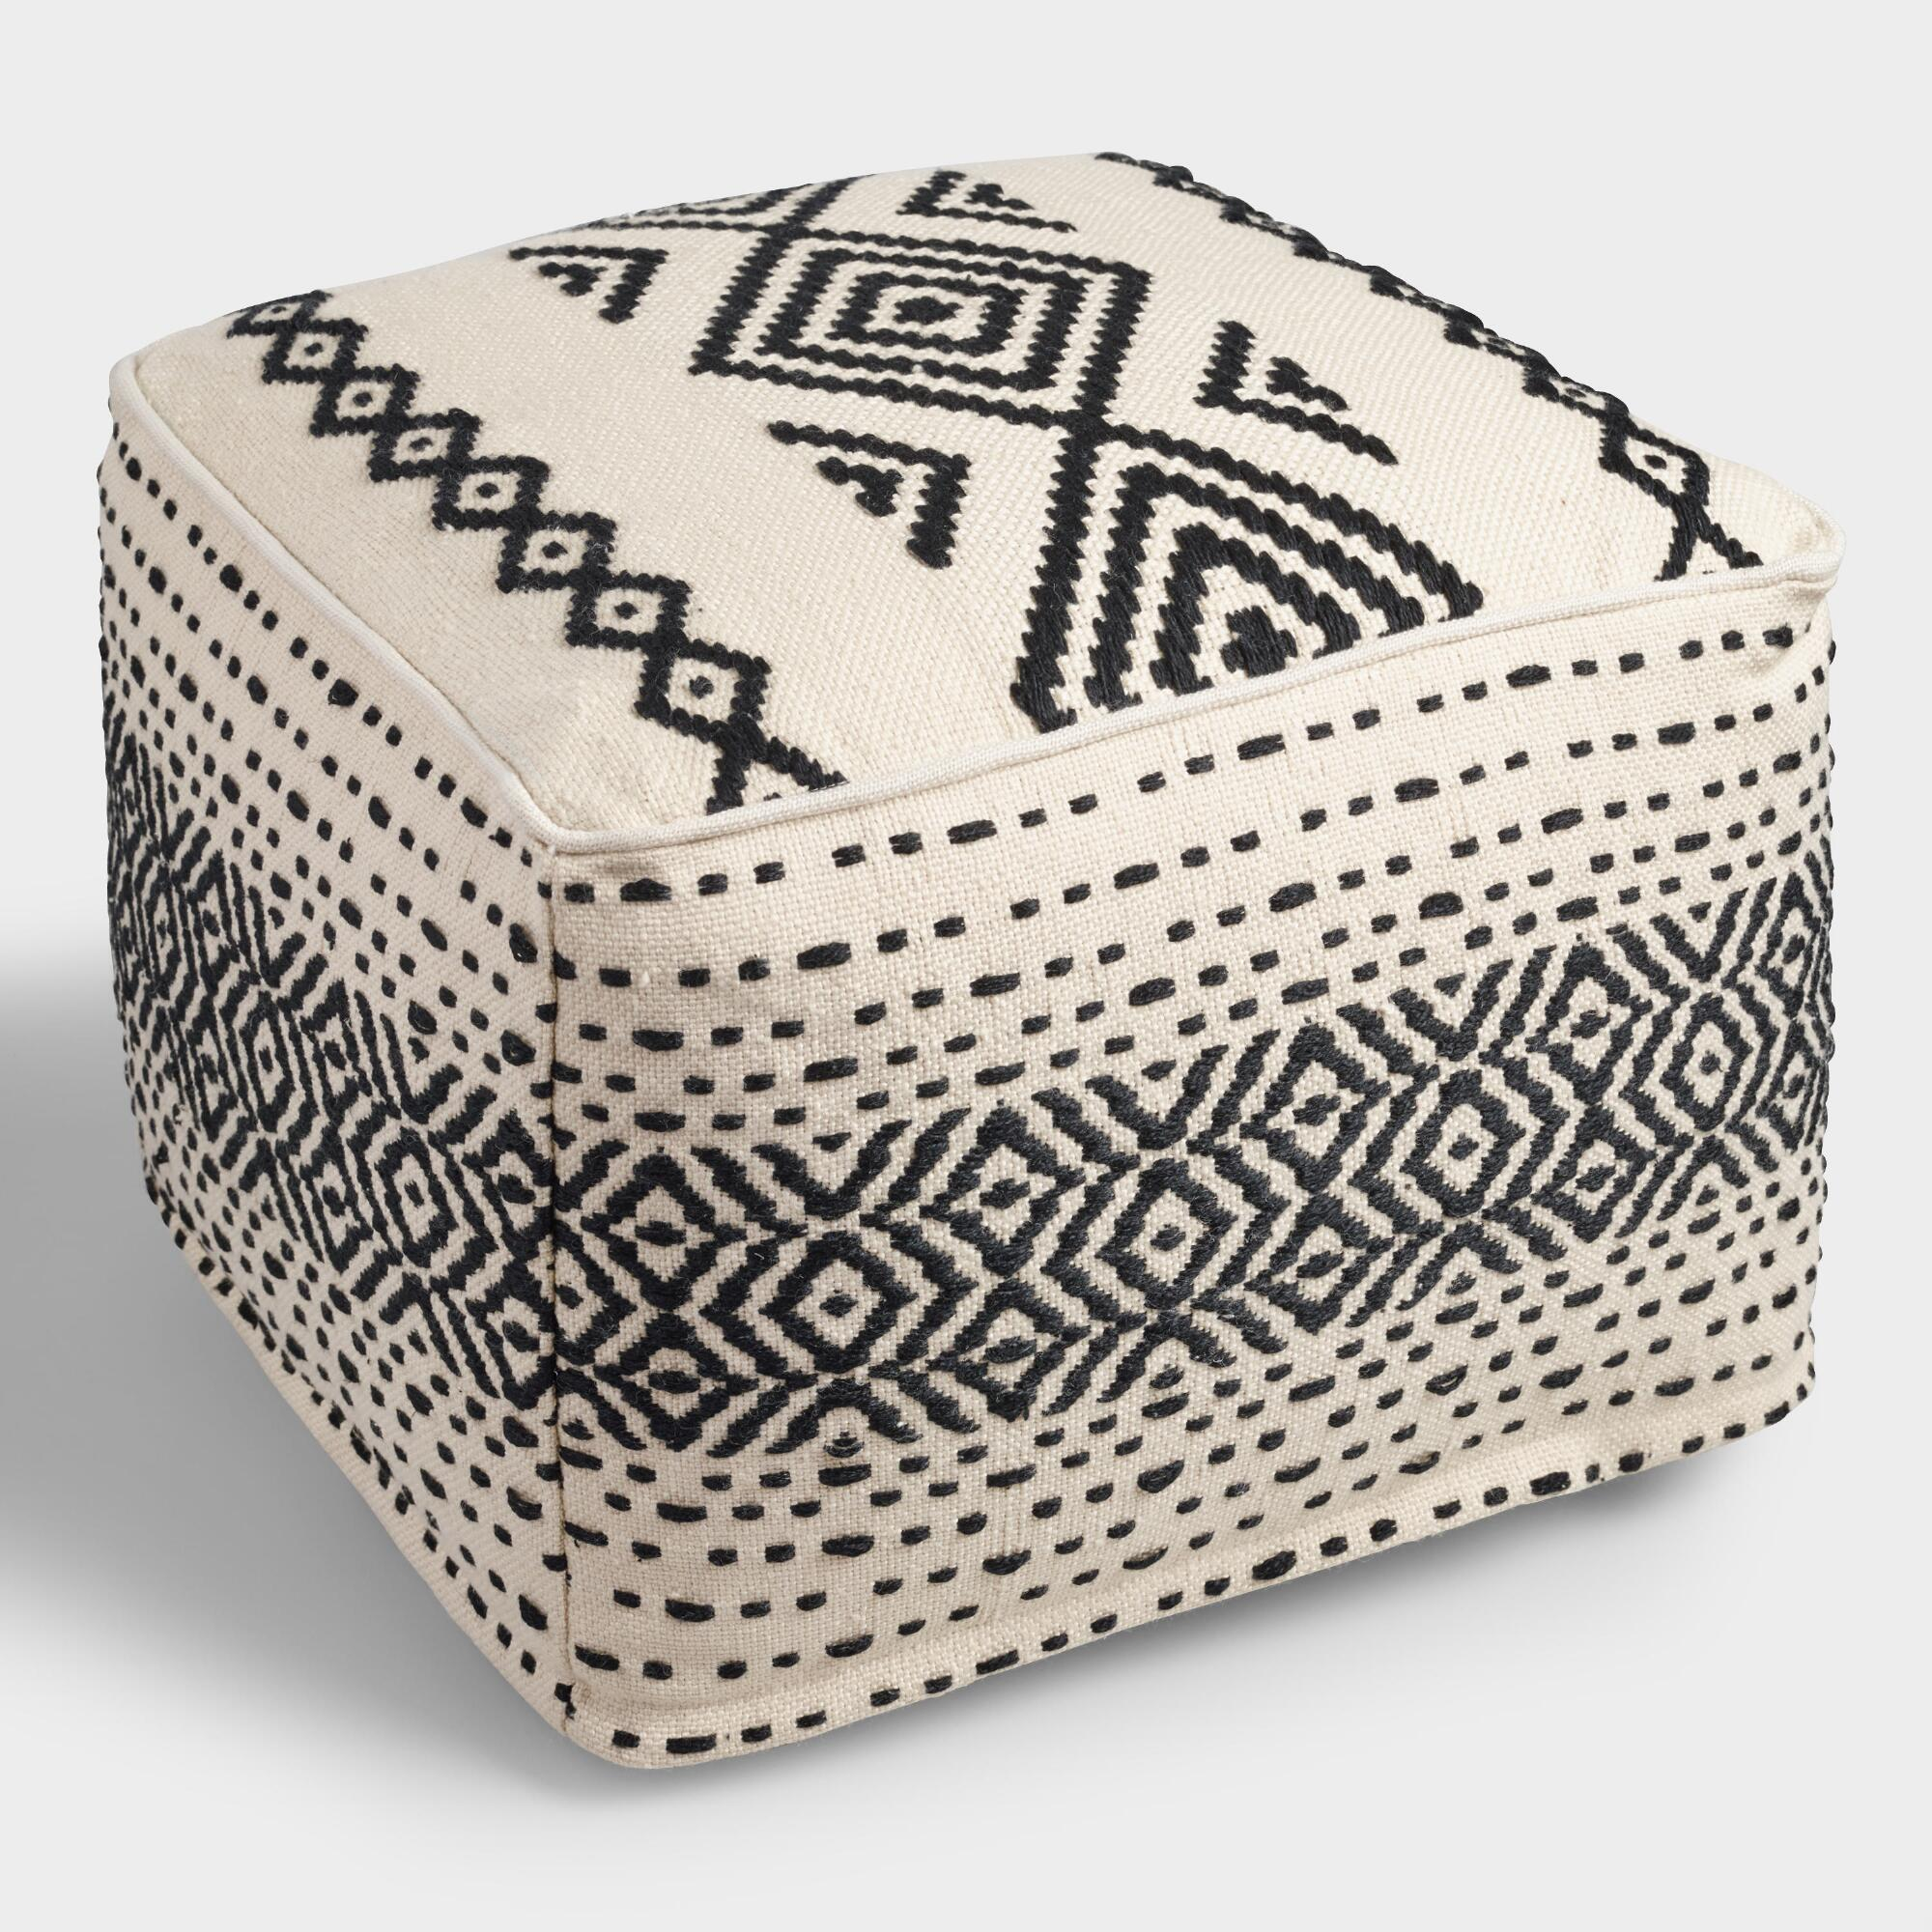 Black And White Kilim Indoor Outdoor Pouf In 2021 Outdoor Pouf Floor Pillows And Poufs Pouf